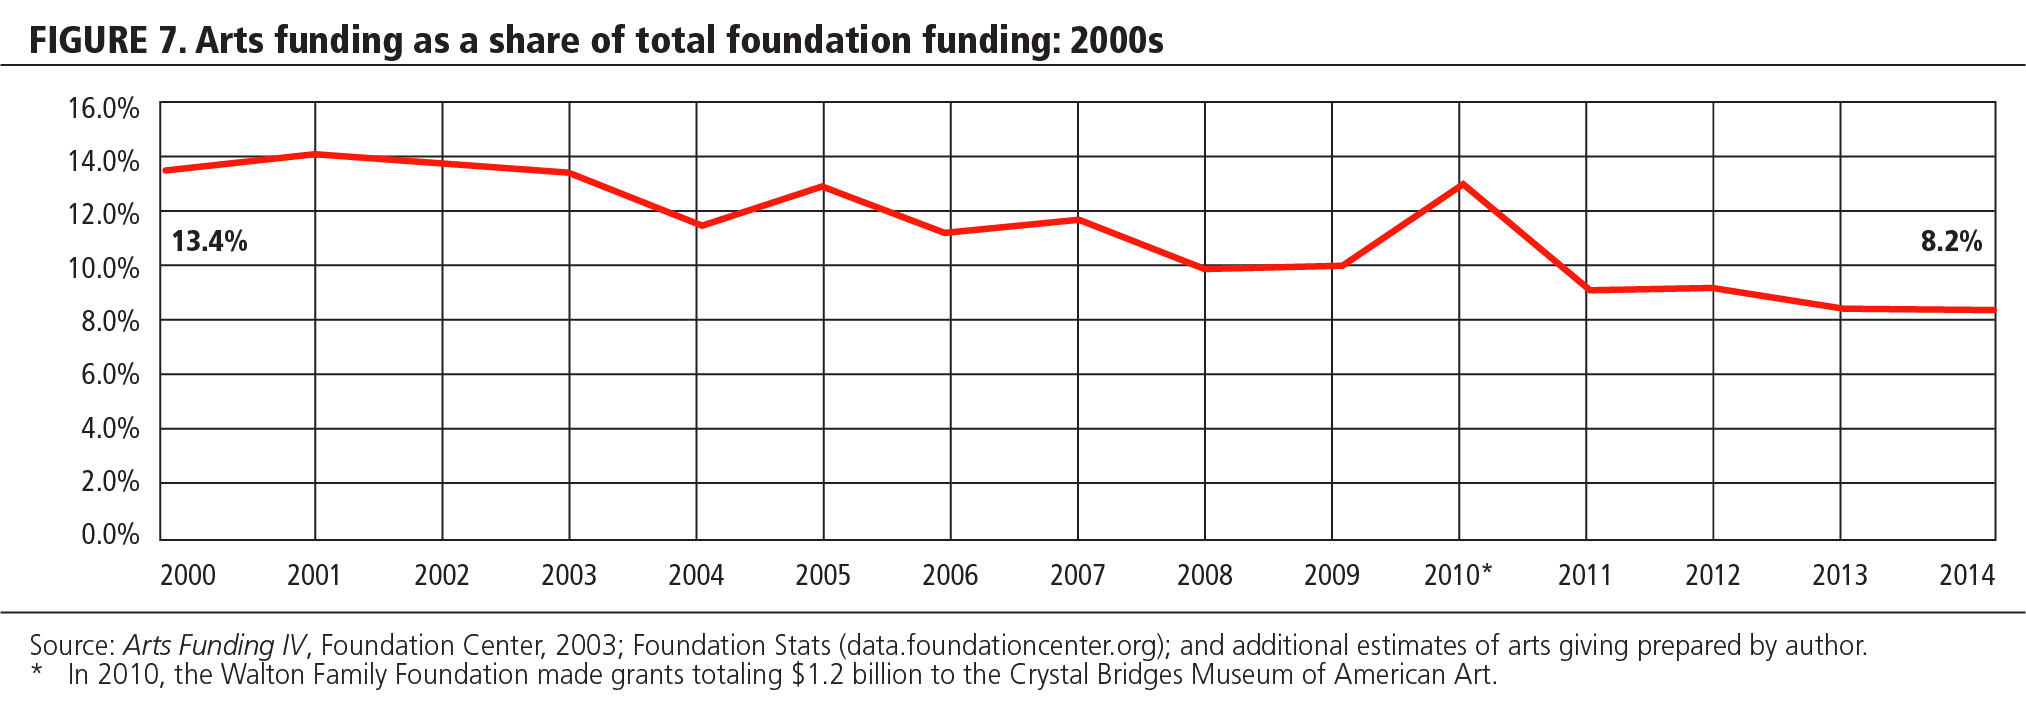 FIGURE 7 Arts funding as a share of total foundation funding: 2000s